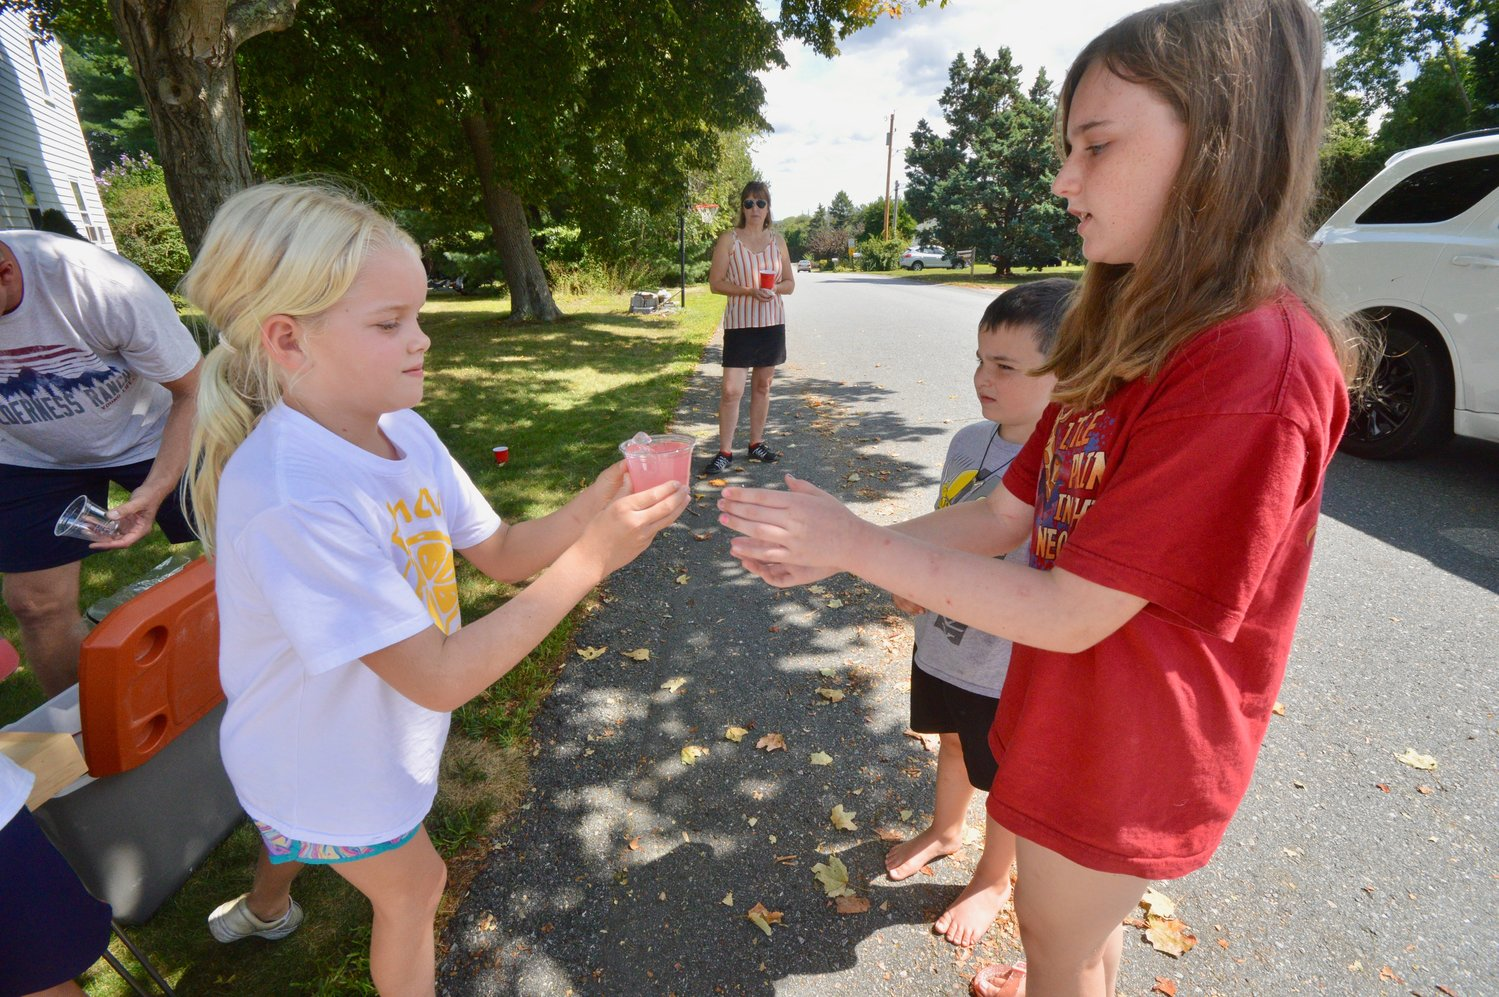 Gwen Schaub (left) hands a cup of lemonade to Olivia Purdy as Andrew Purdy waits for his glass. The Schaub family held the fund-raiser for Africa New Life's Meals for School Kids in Rwanda program.